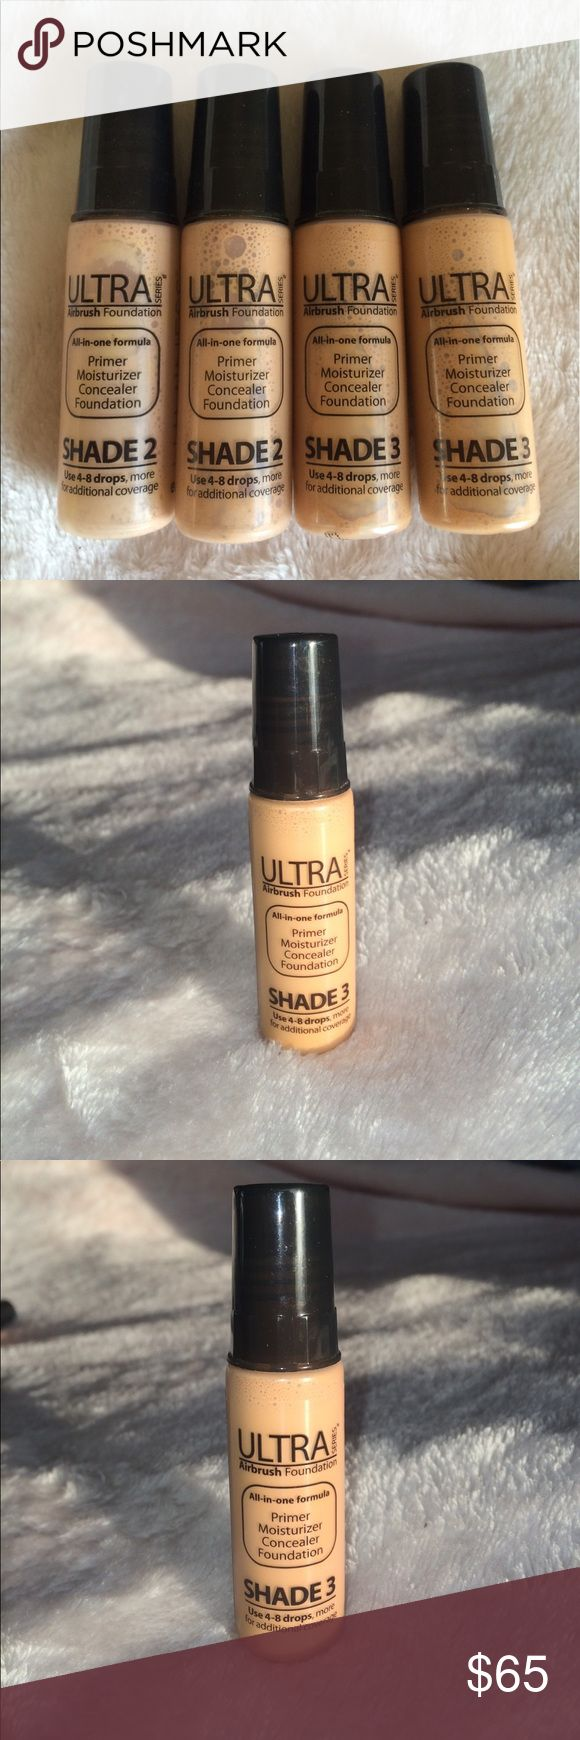 4 Luminess Air Airbrush All-in-one Foundation 4 Luminess Air Airbrush All-in-one Foundation: two in the shade 2, two in the shade 3. Barely used. The one I used the most was a shade 2, but still has more then 80% or product in the bottle. Luminess Air Makeup Foundation